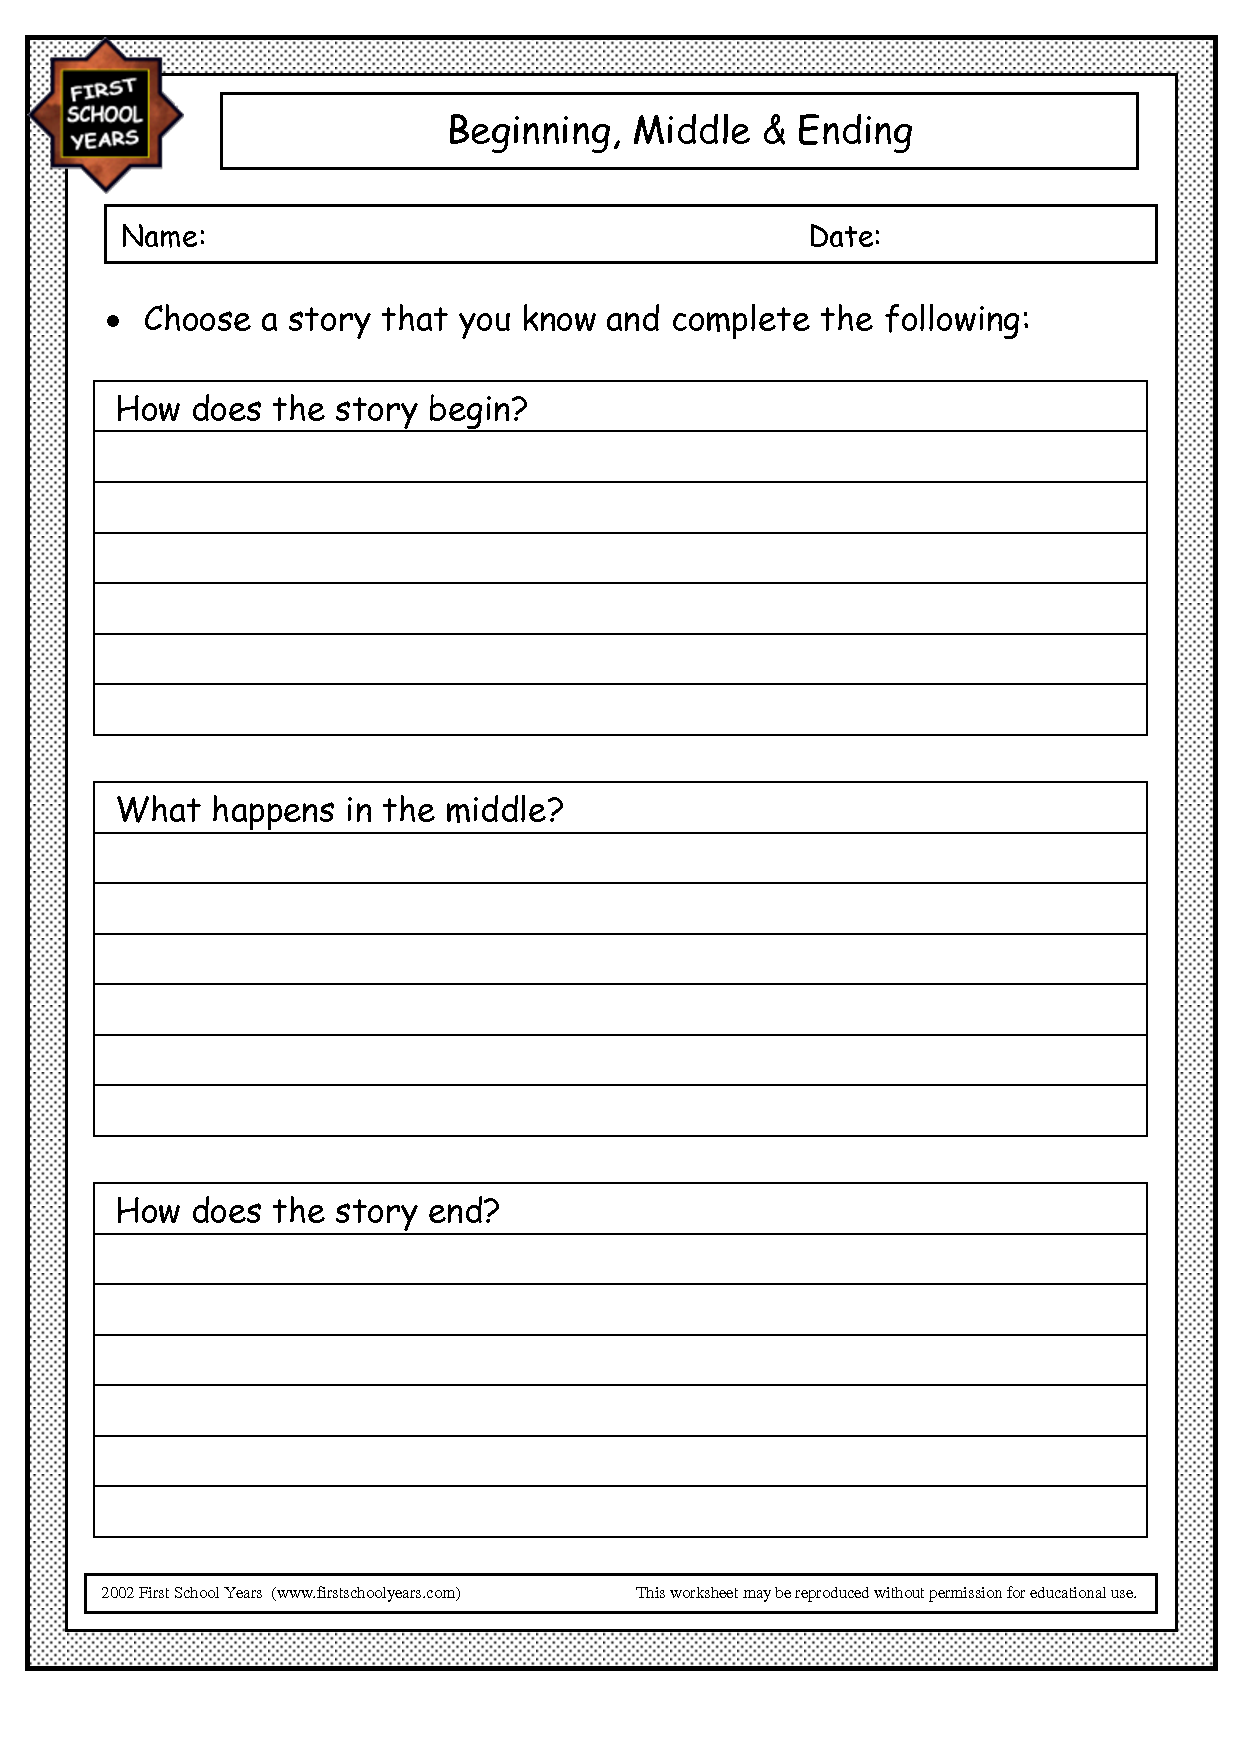 Worksheets Beginning Middle End Worksheet beginning middle end worksheet kindergarten images rachael images